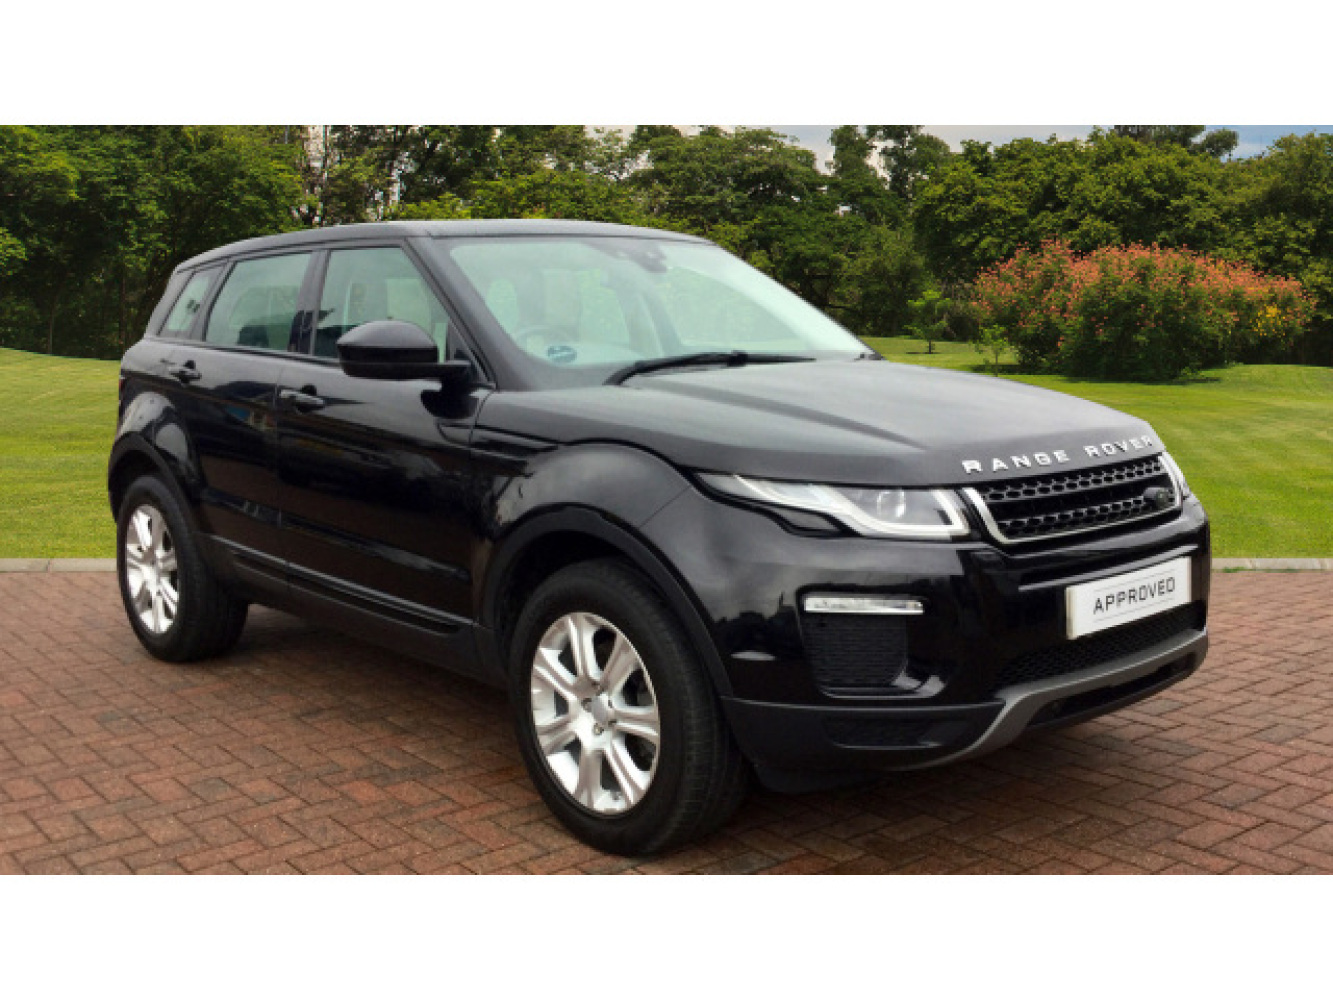 used land rover range rover evoque 2 0 td4 se tech 5dr diesel hatchback for sale farnell land. Black Bedroom Furniture Sets. Home Design Ideas